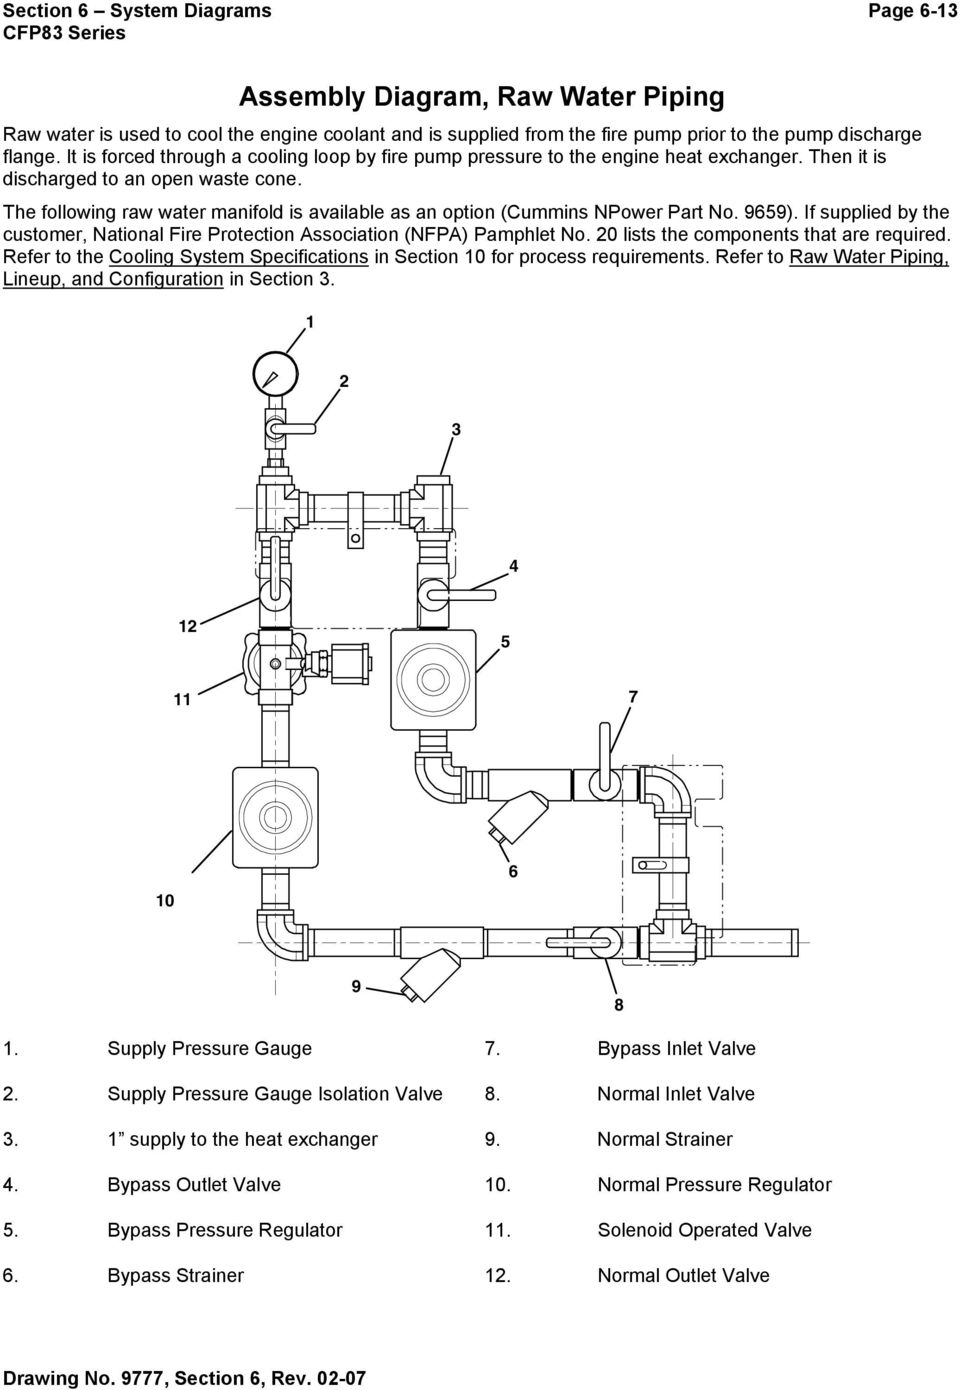 Section 6 System Diagrams Pdf Navistar 13 Liter Engine Diagram The Following Raw Water Manifold Is Available As An Option Cummins Npower Part No